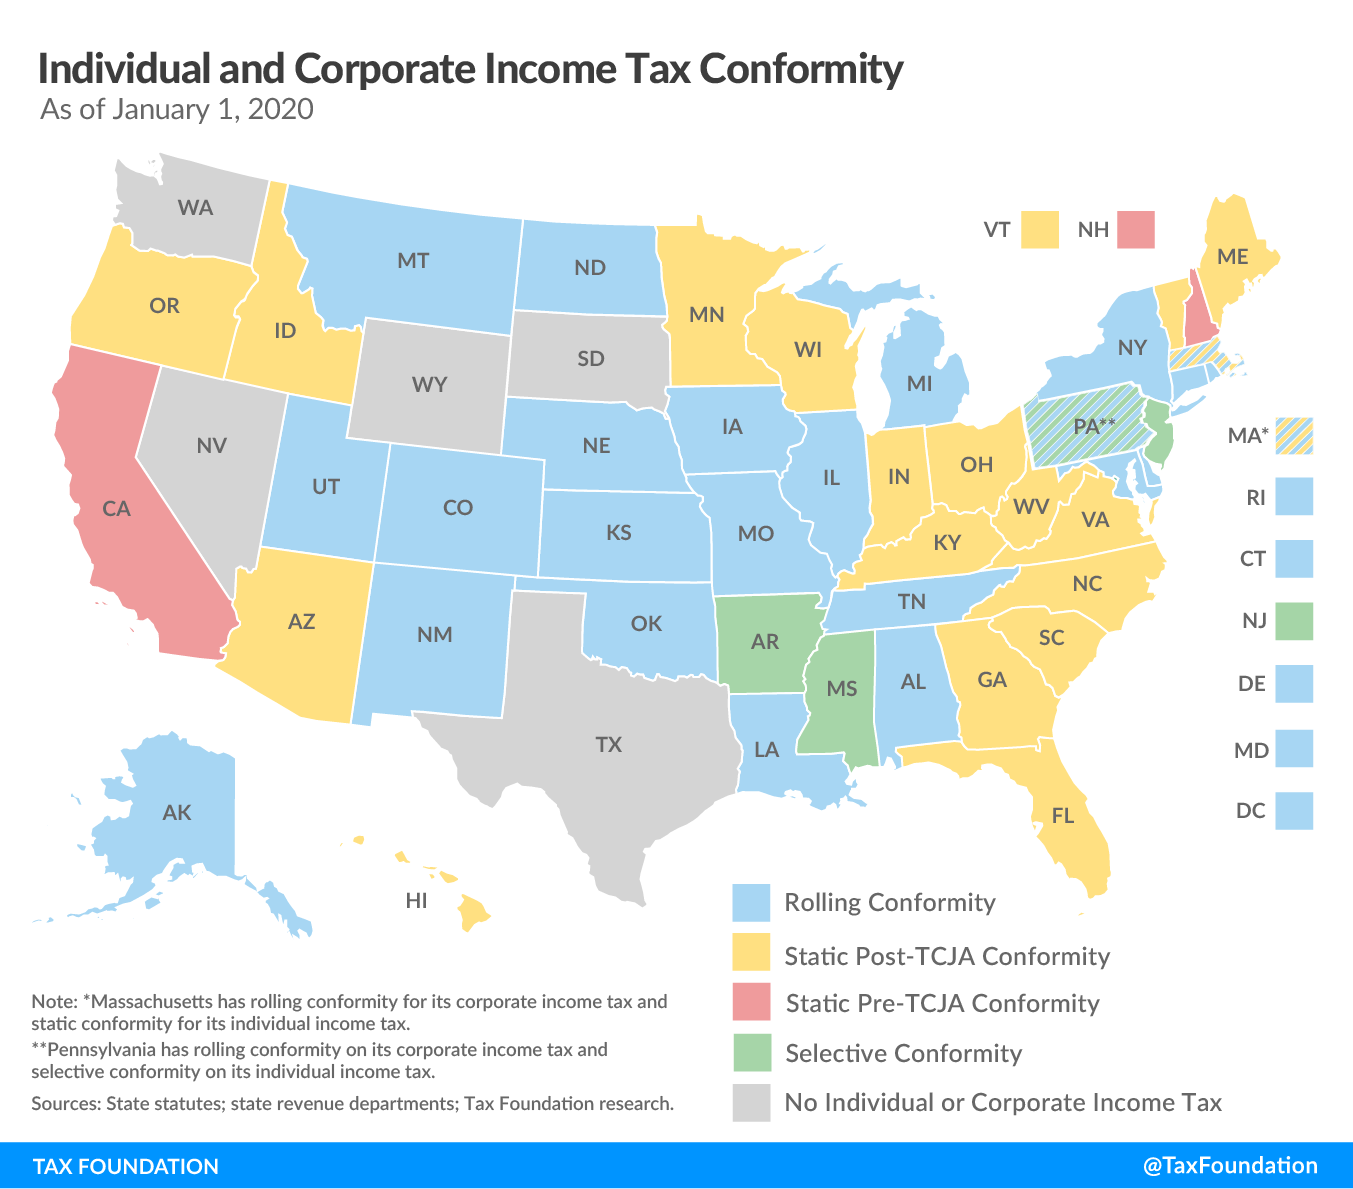 State individual income tax conformity and state corporate income tax conformity pre-TCJA and post-TCJA